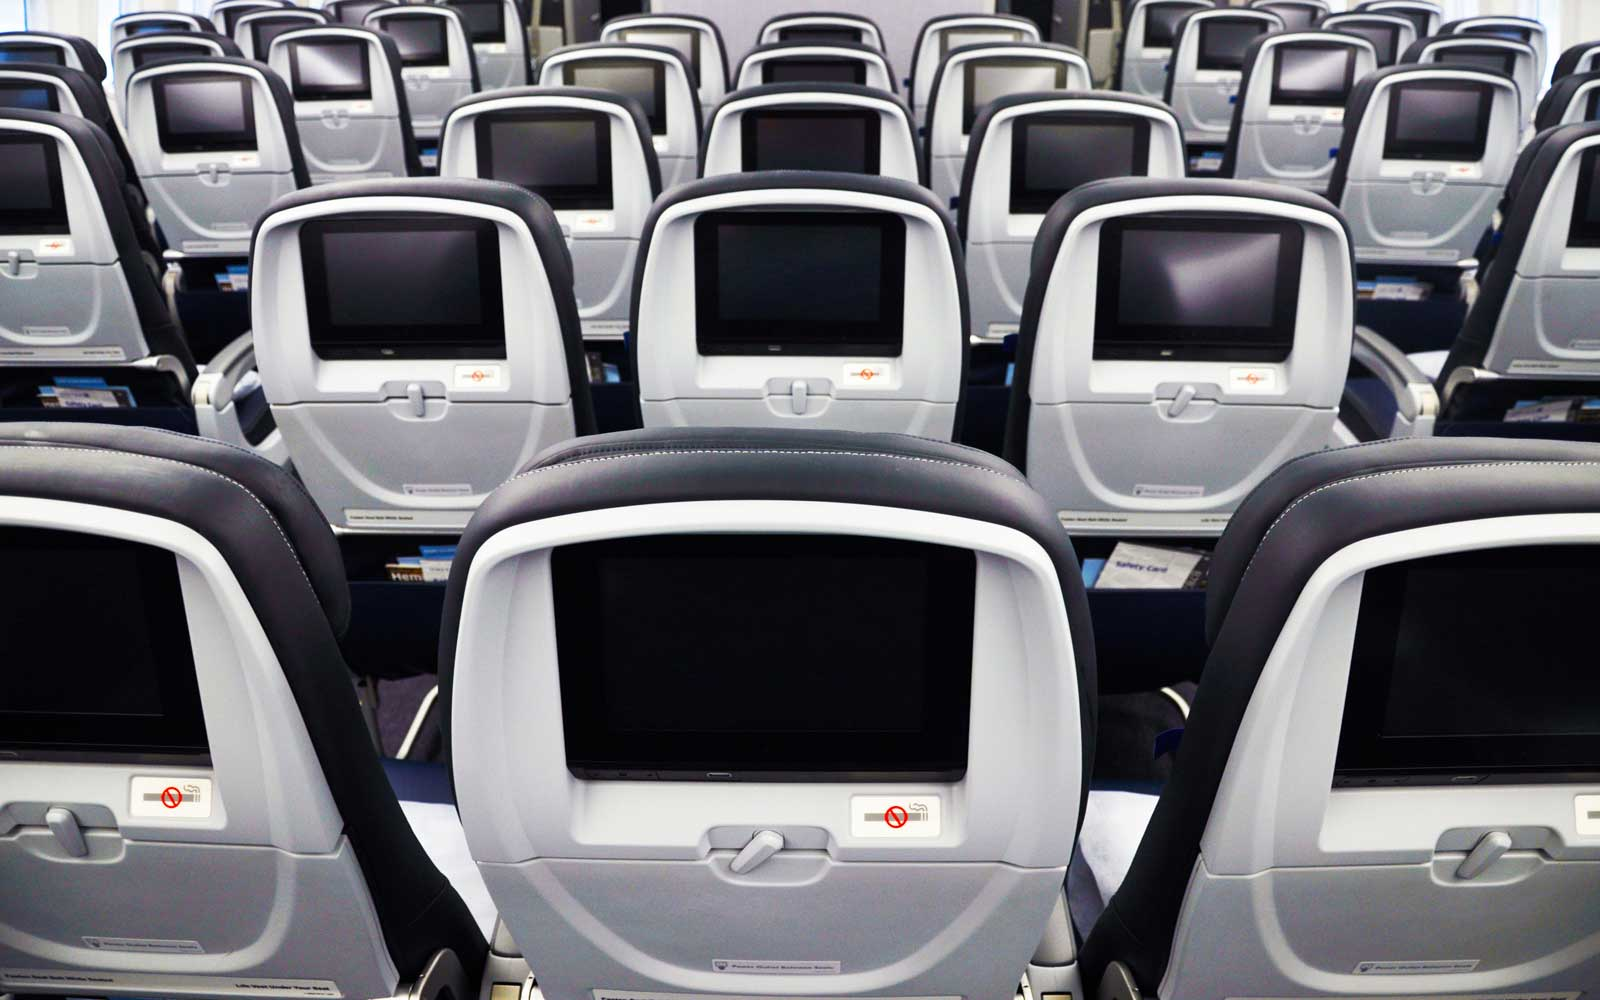 Delta Airlines Censors Movies